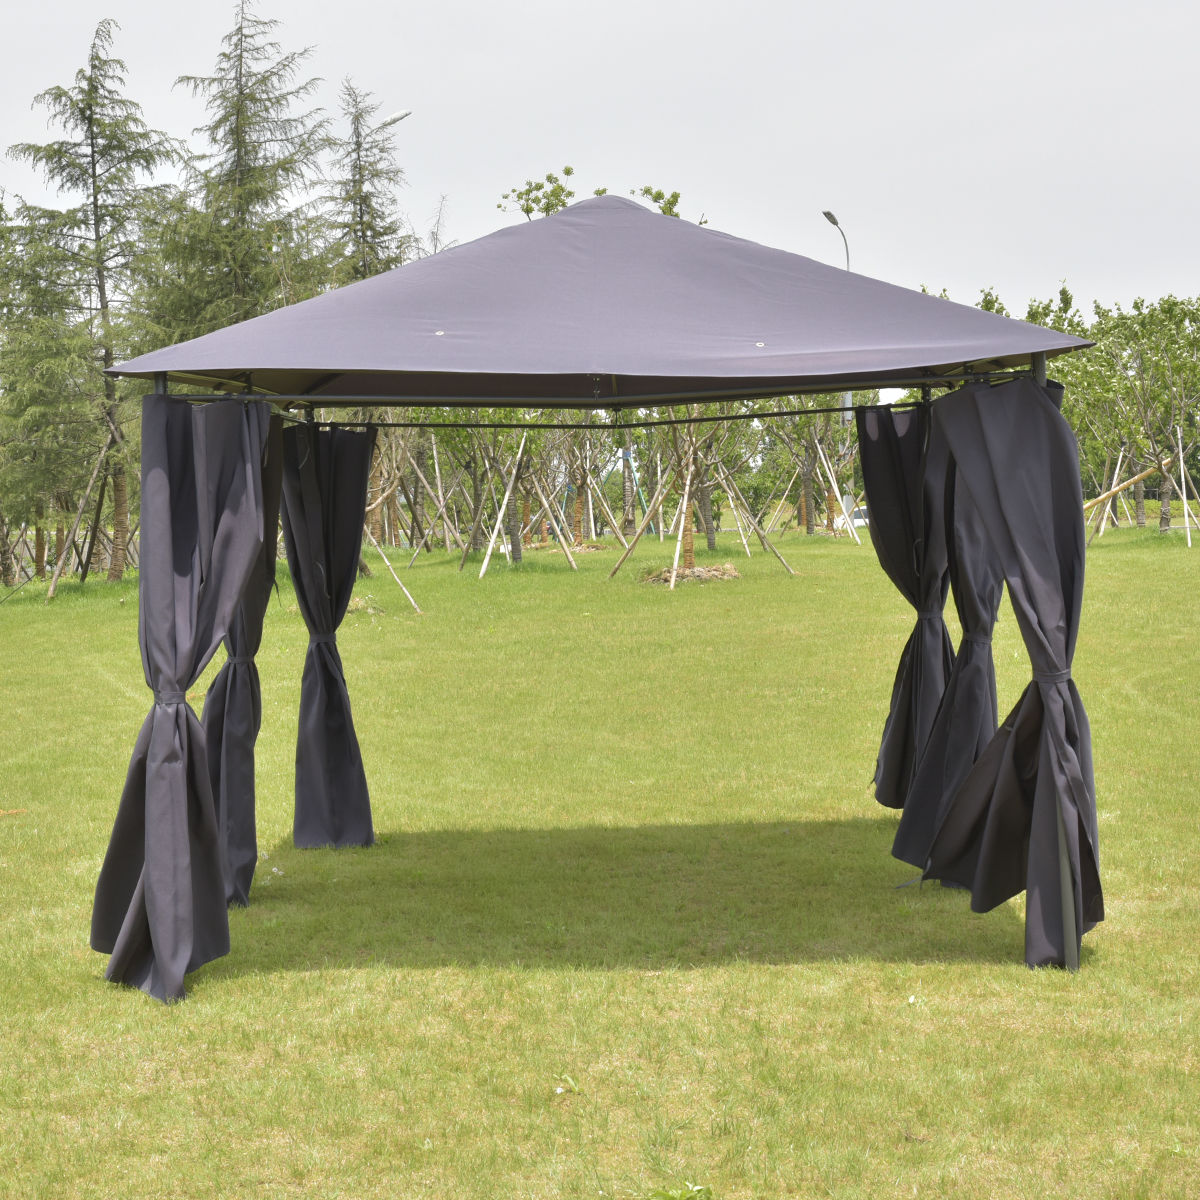 Outdoor 10' x 13' Gazebo Canopy Tent Shelter-Gray